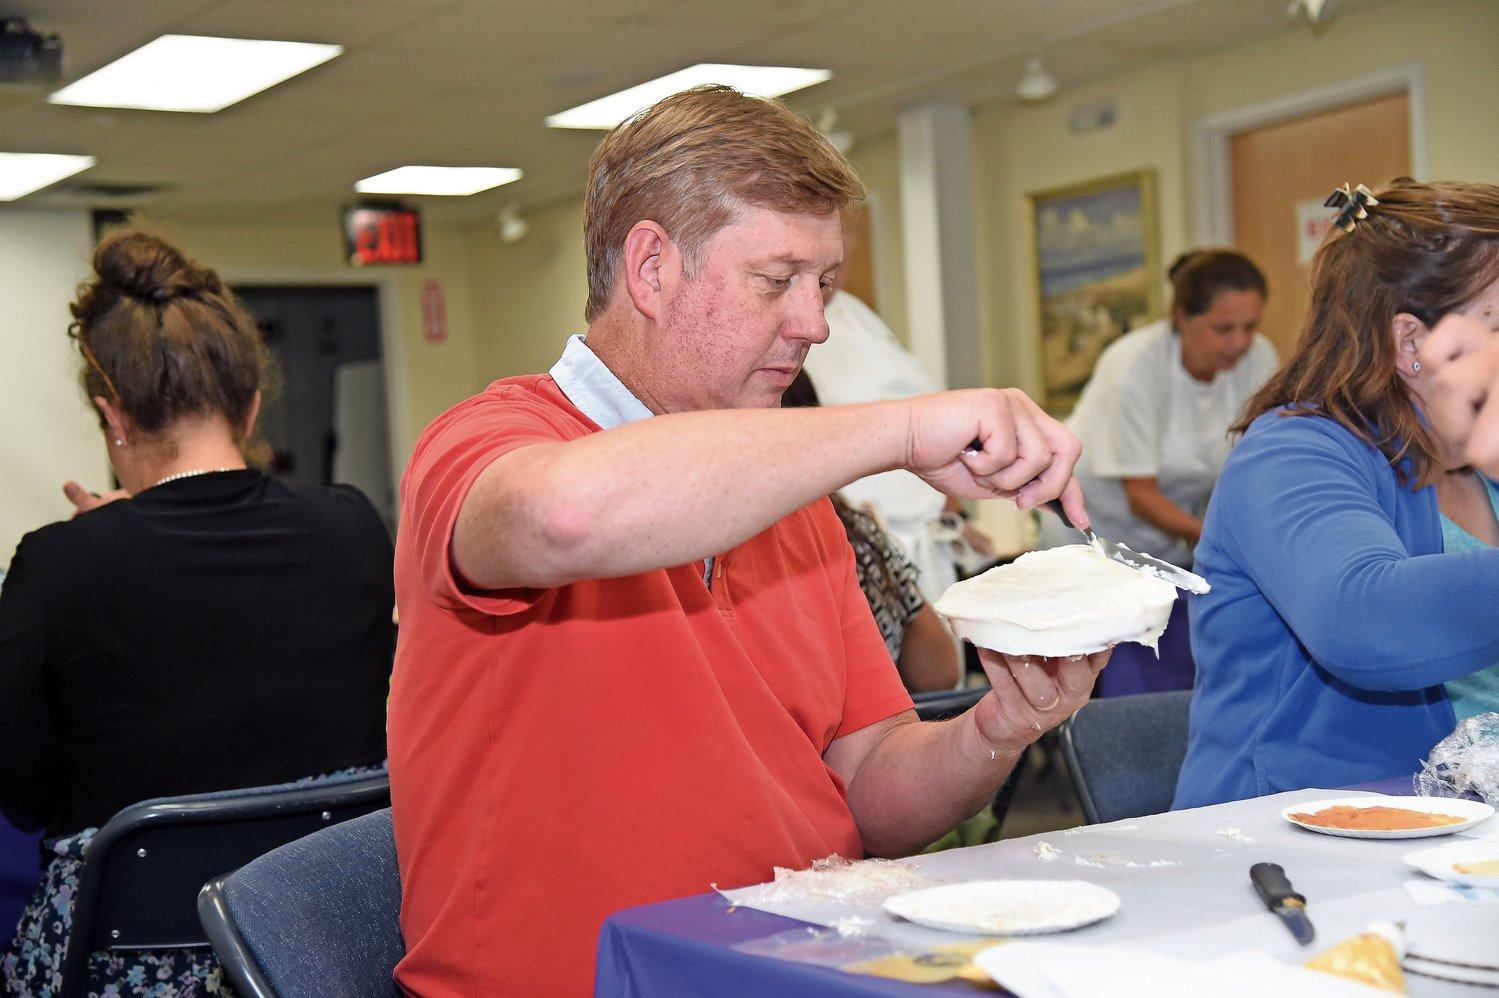 Eric Murdoch added icing to his cake at the Franklin Square library's Adult Cake Decorating class on Aug. 15.